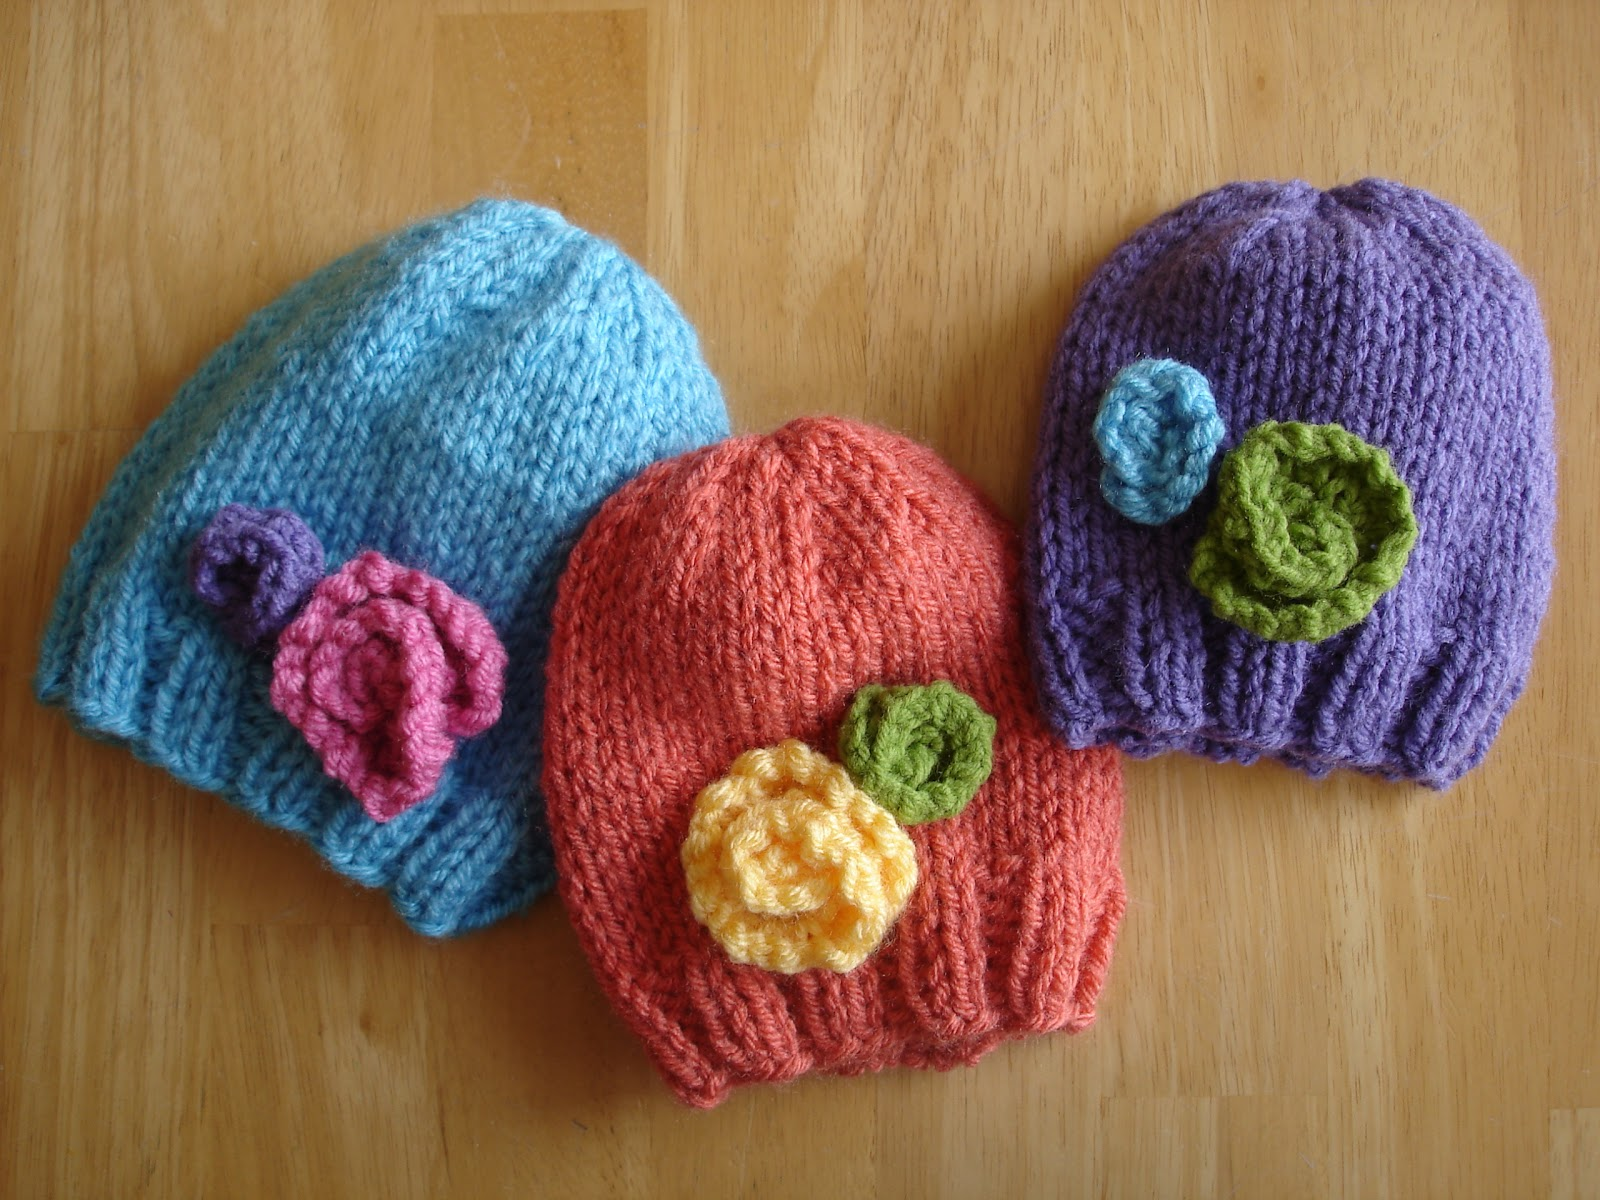 Free Knitting Patterns For Toddlers Beanies : Fiber Flux: Free Knitting Pattern! Baby In Bloom Hats